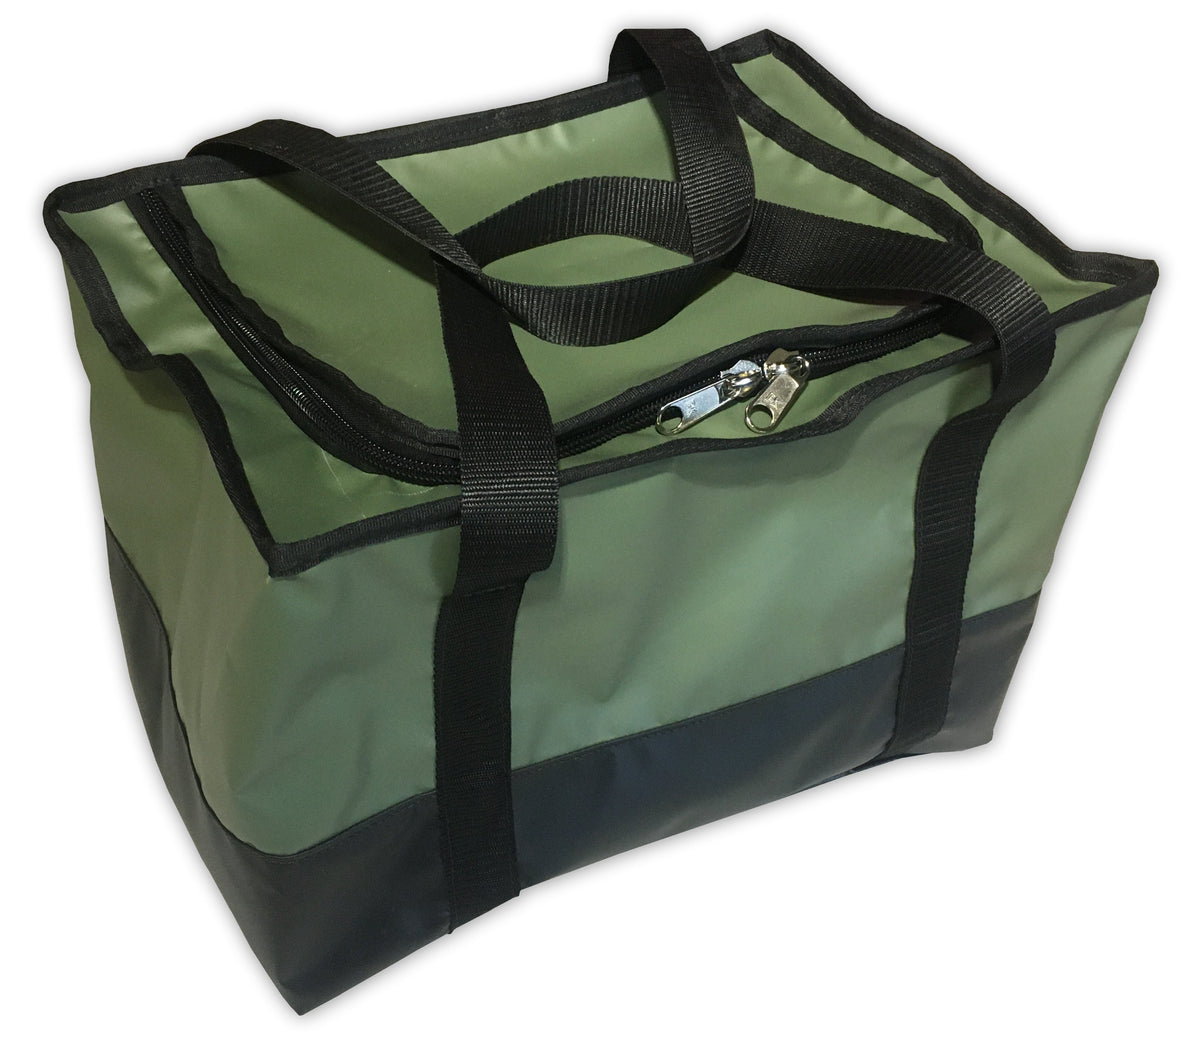 Olive green 4x4 and horse racing gear bag